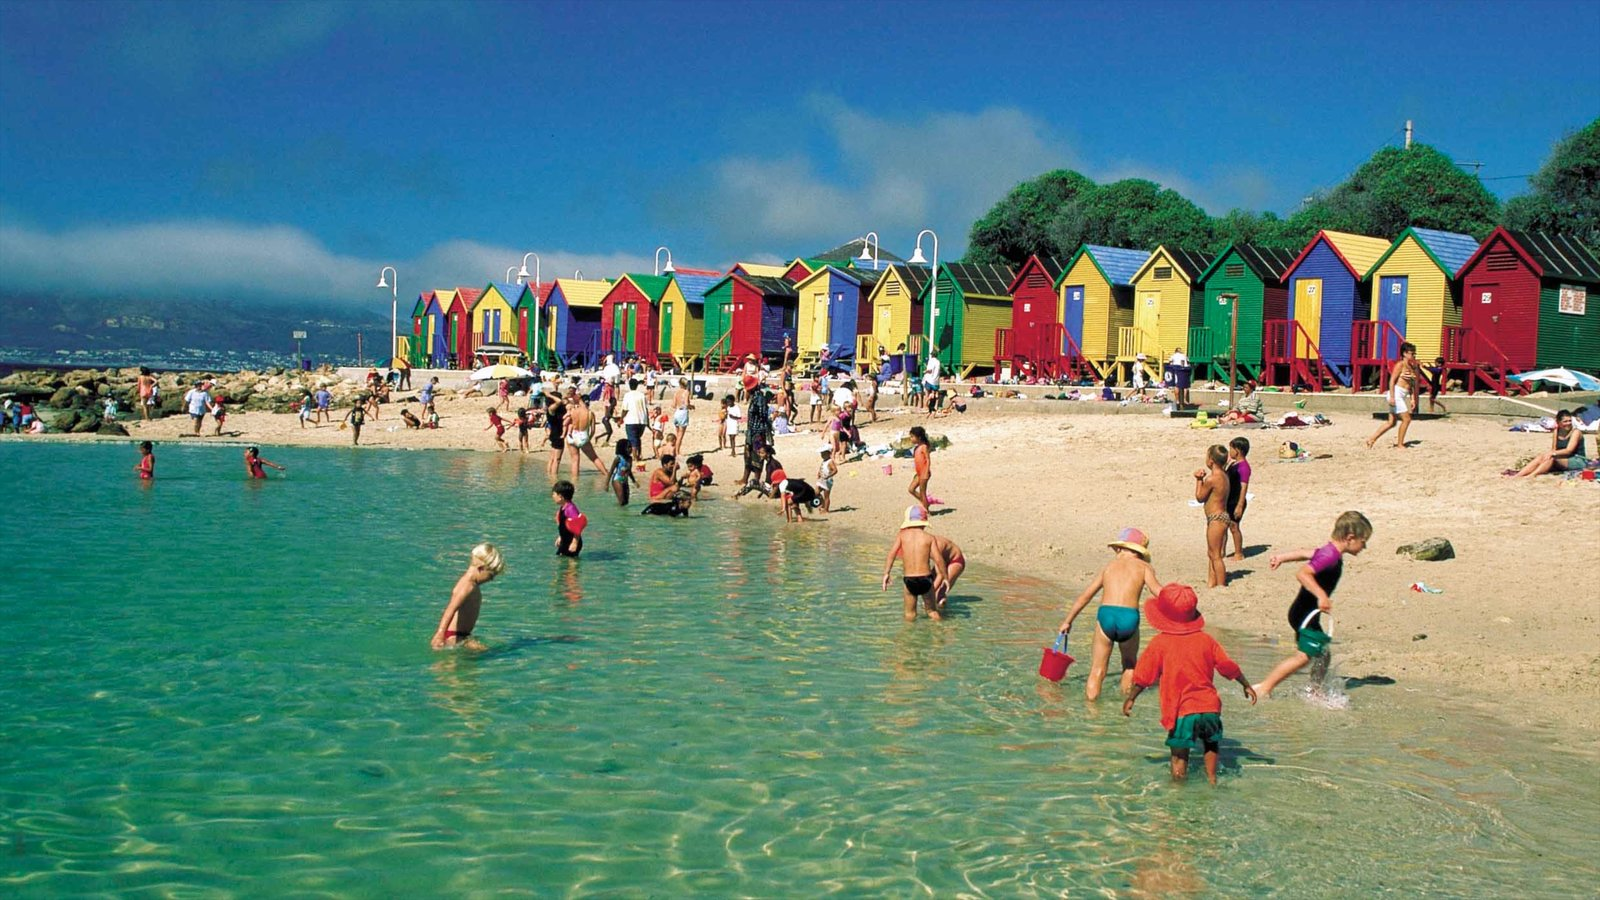 Cape Town showing a sandy beach and general coastal views as well as children